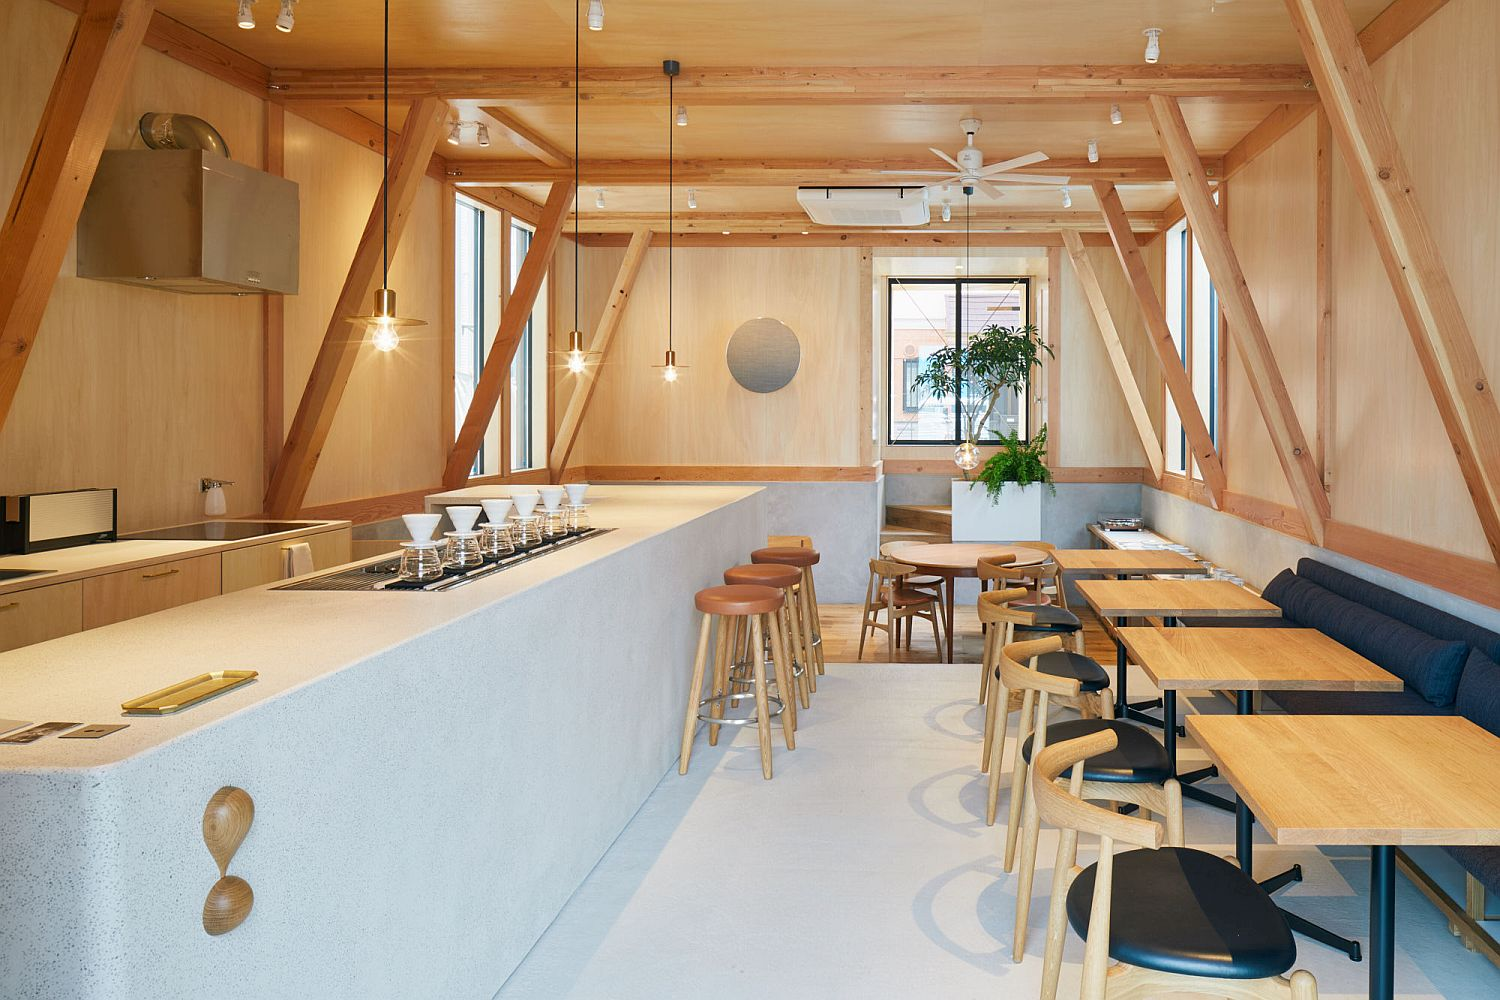 Fabulous-use-of-lovely-wood-structure-inside-the-cafe-adds-warmth-and-nativity-to-the-setting